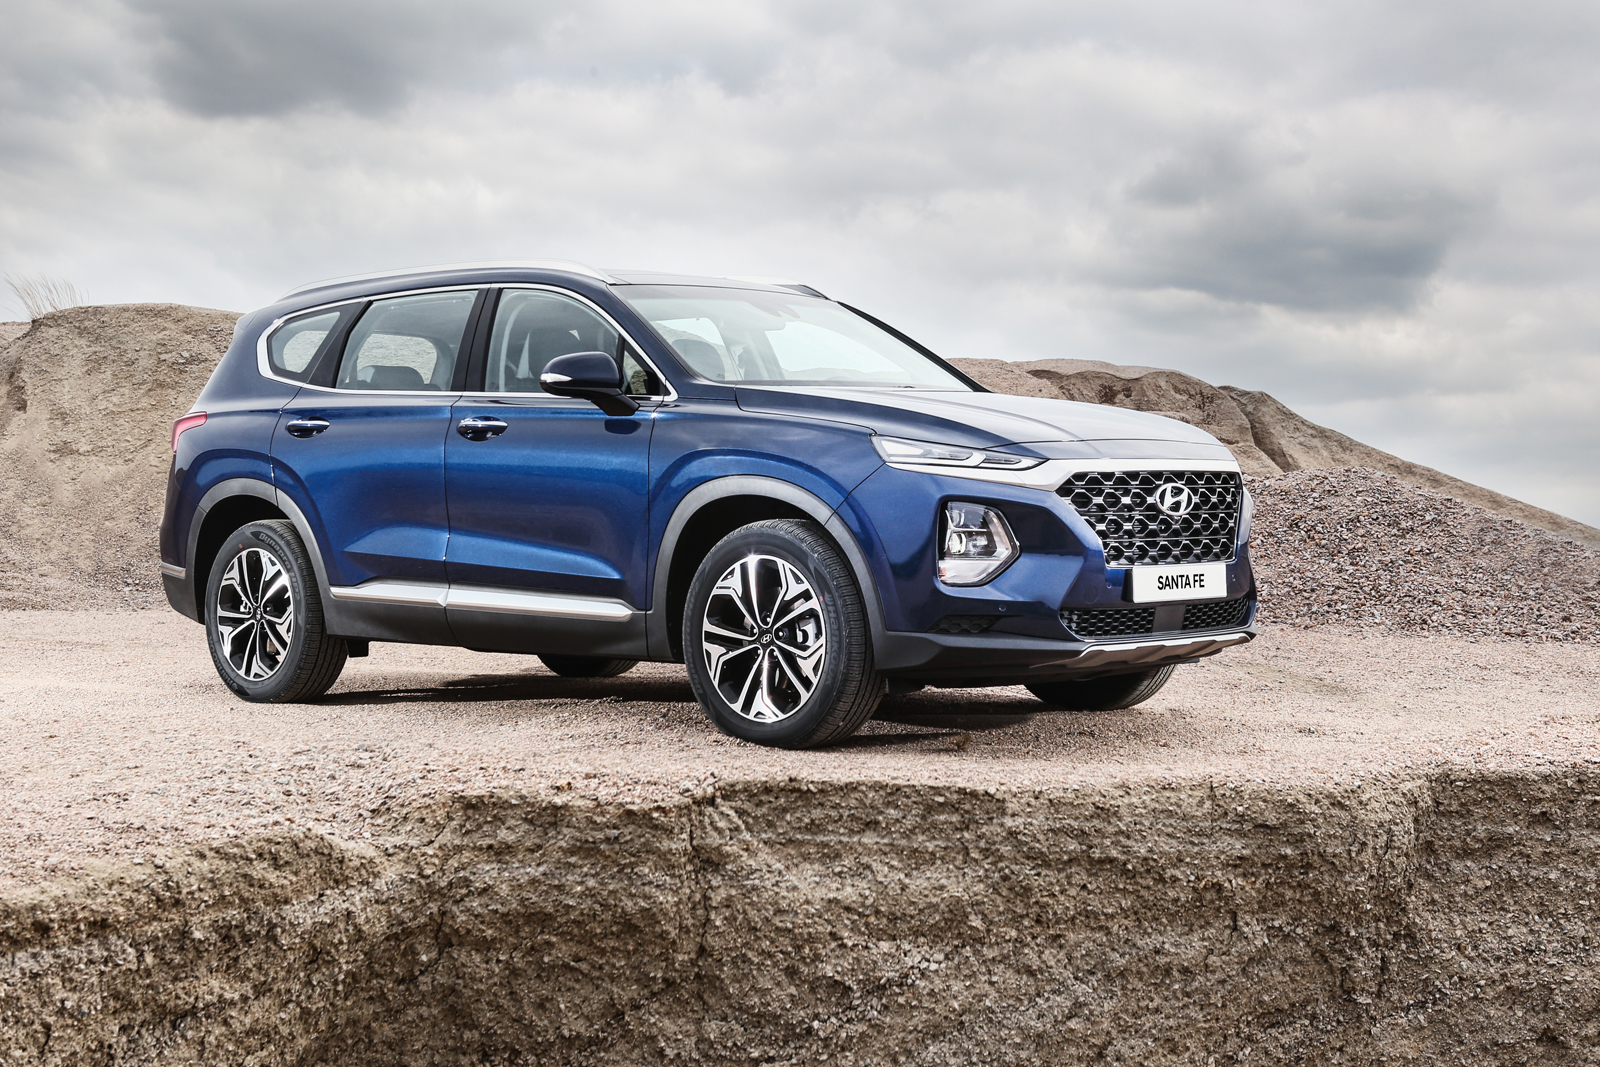 The Fourth Generation, 2019 Hyundai Santa Fe Crossover Has Been Presented  In South Korea. The Santa Fe Is An Important Product For Hyundai In North  America.